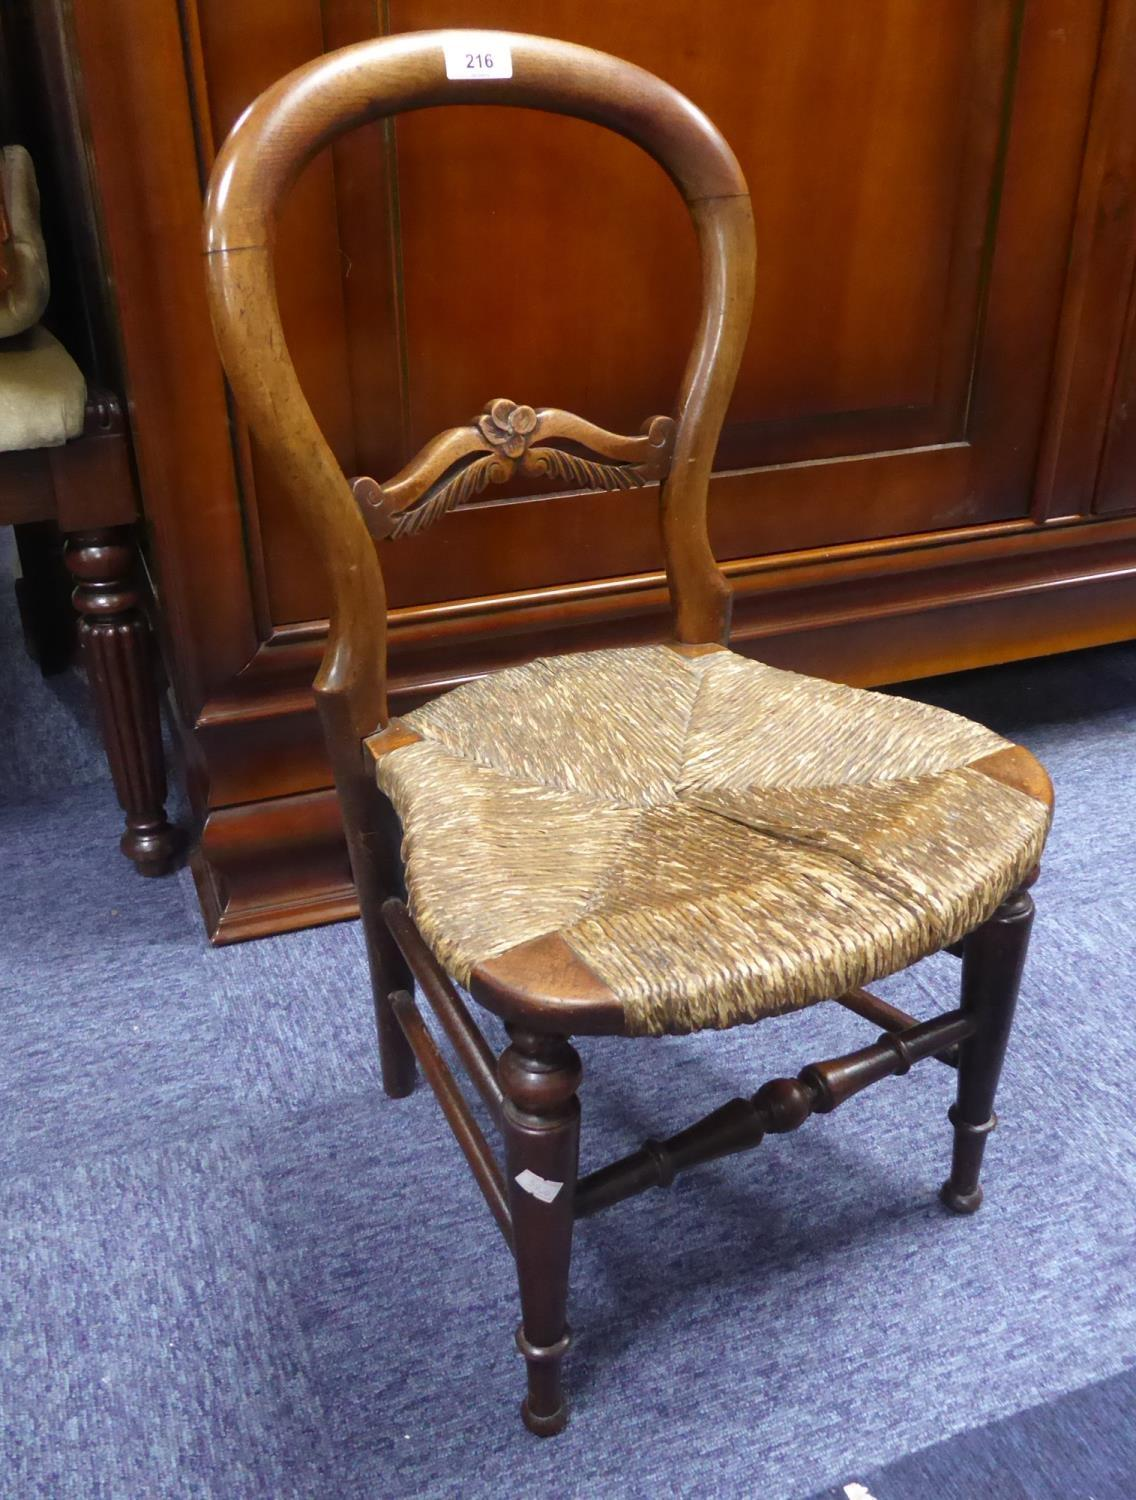 Lot 216 - NINETEENTH CENTURY CARVED WALNUT CHILD'S RUSH SEATED BALLOON BACK CHAIR, of typical form with